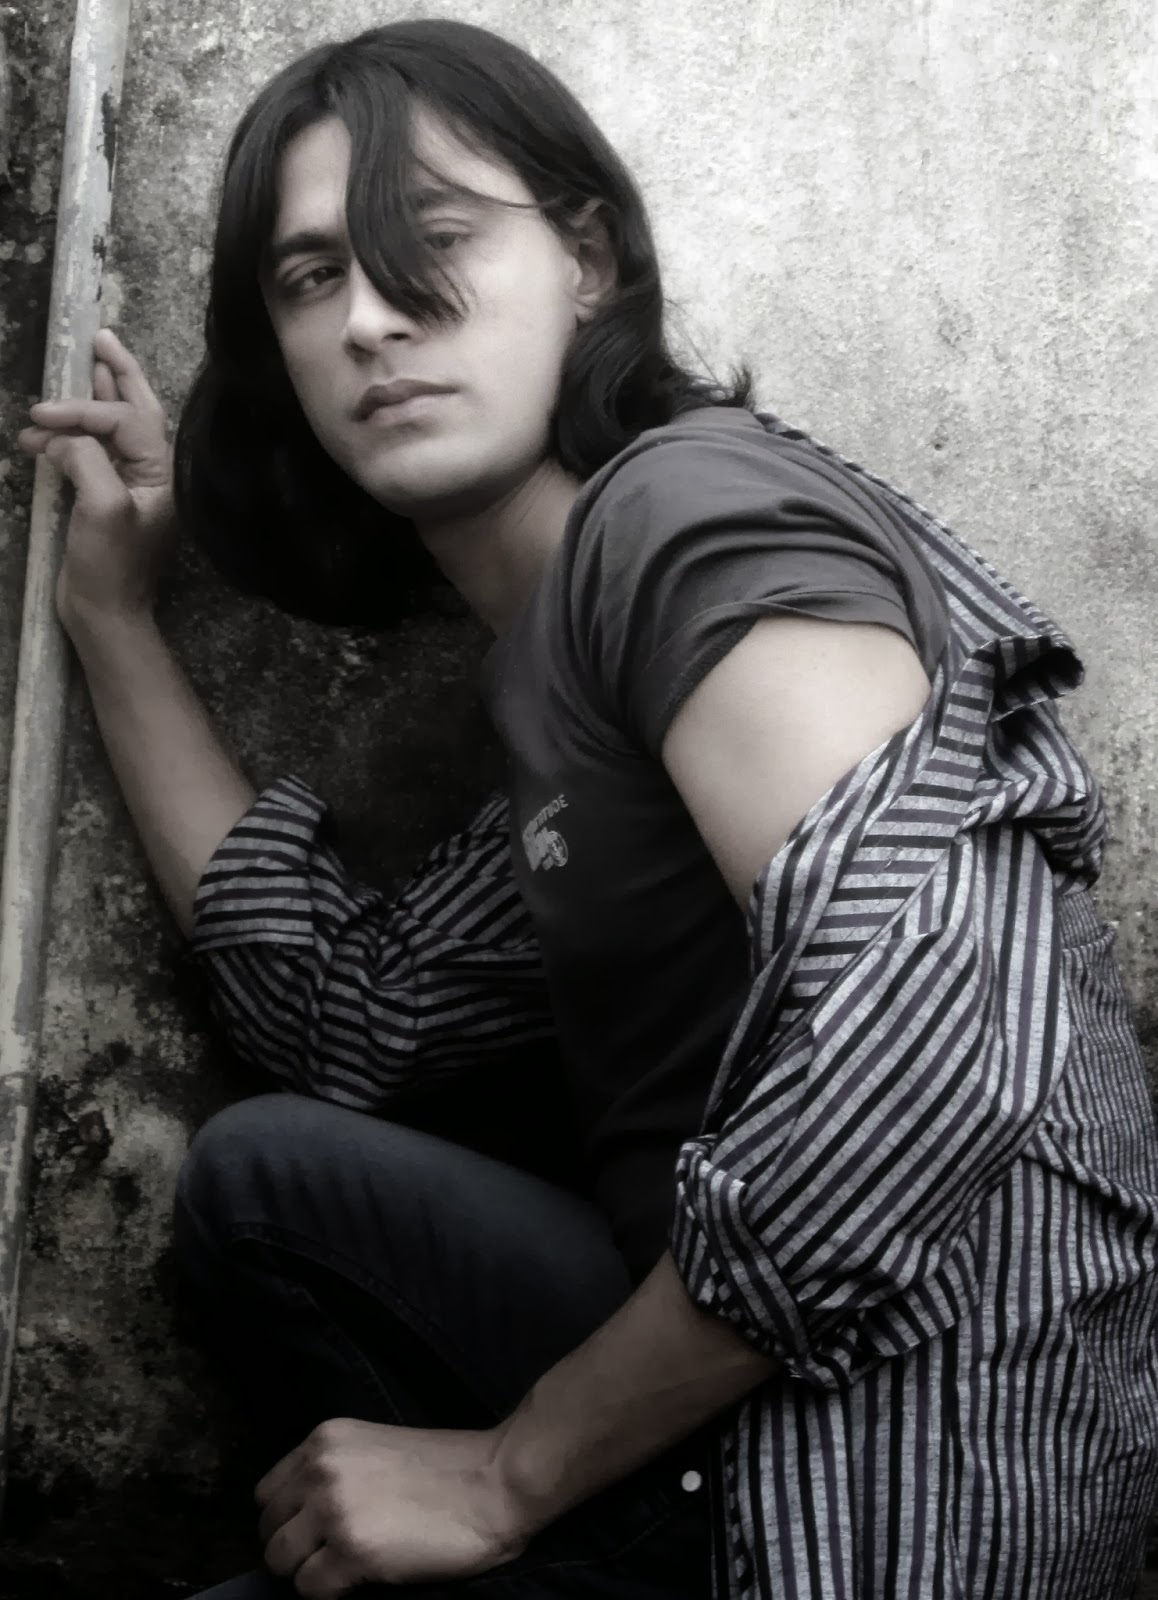 Rajkumar Patra Looking sexy and disheveled in worn jeans, a T-shirt  by df creation Session 2014